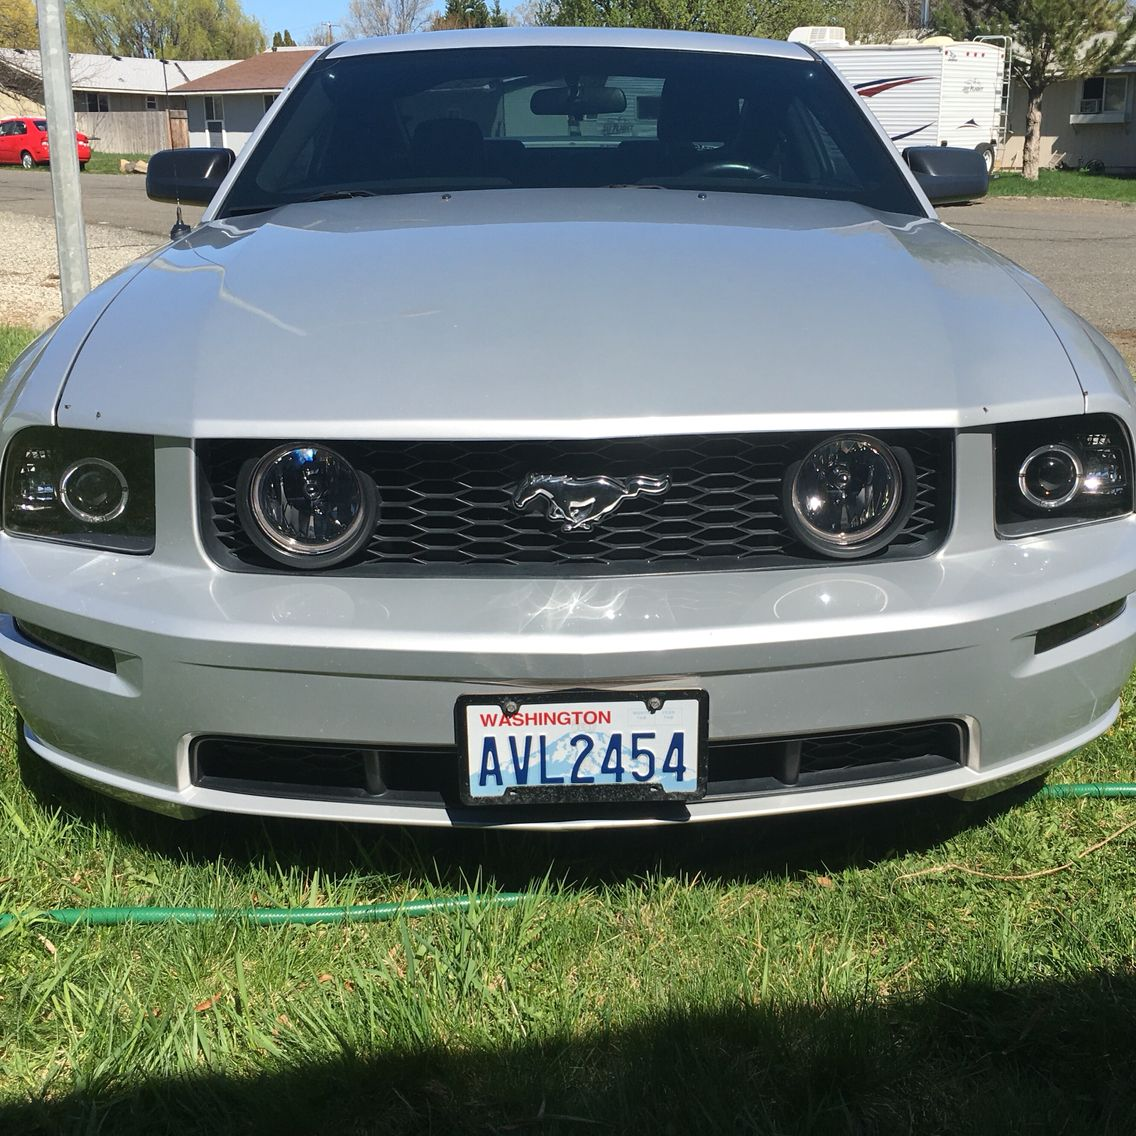 For sale  06 mustang GT  On Craigslist  Yakima wa | Mustangs | 06